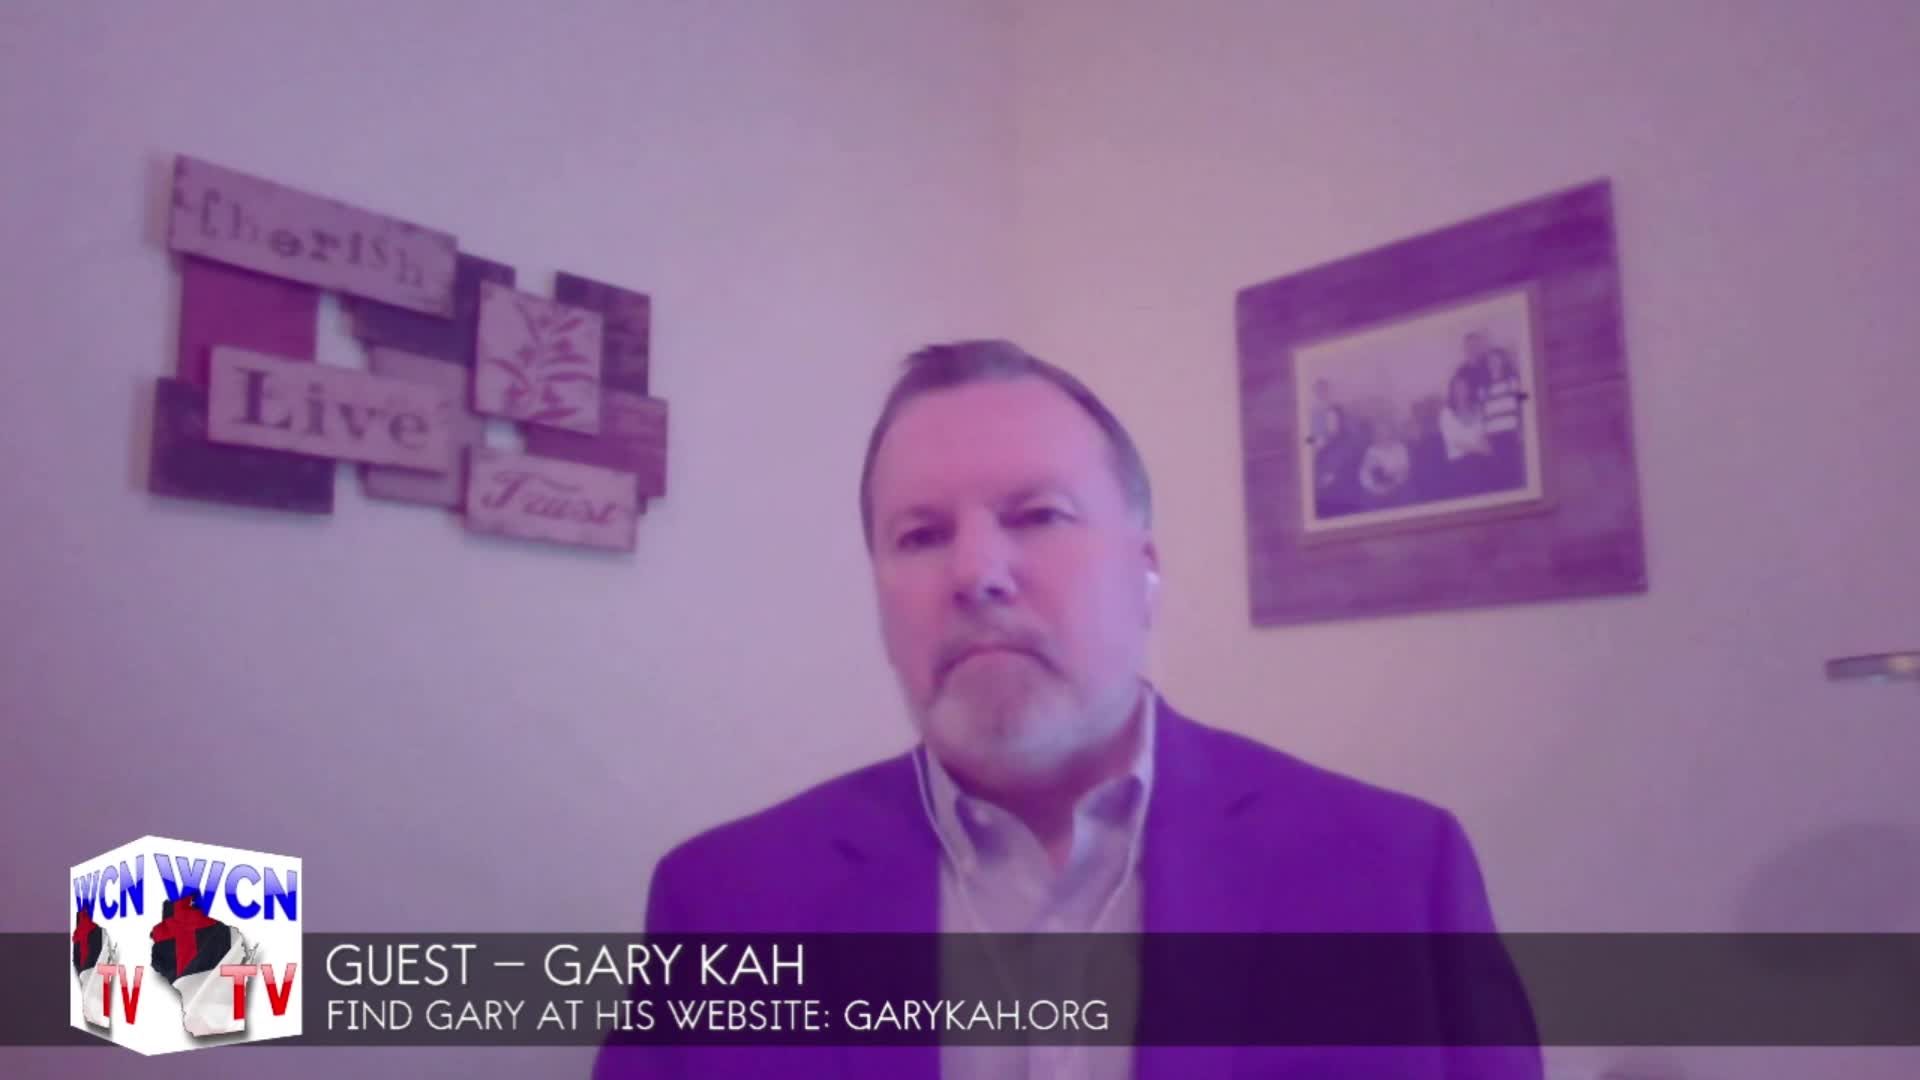 WCN-TV, May 6, 2020 with host Rob Pue and his guest Gary Kah